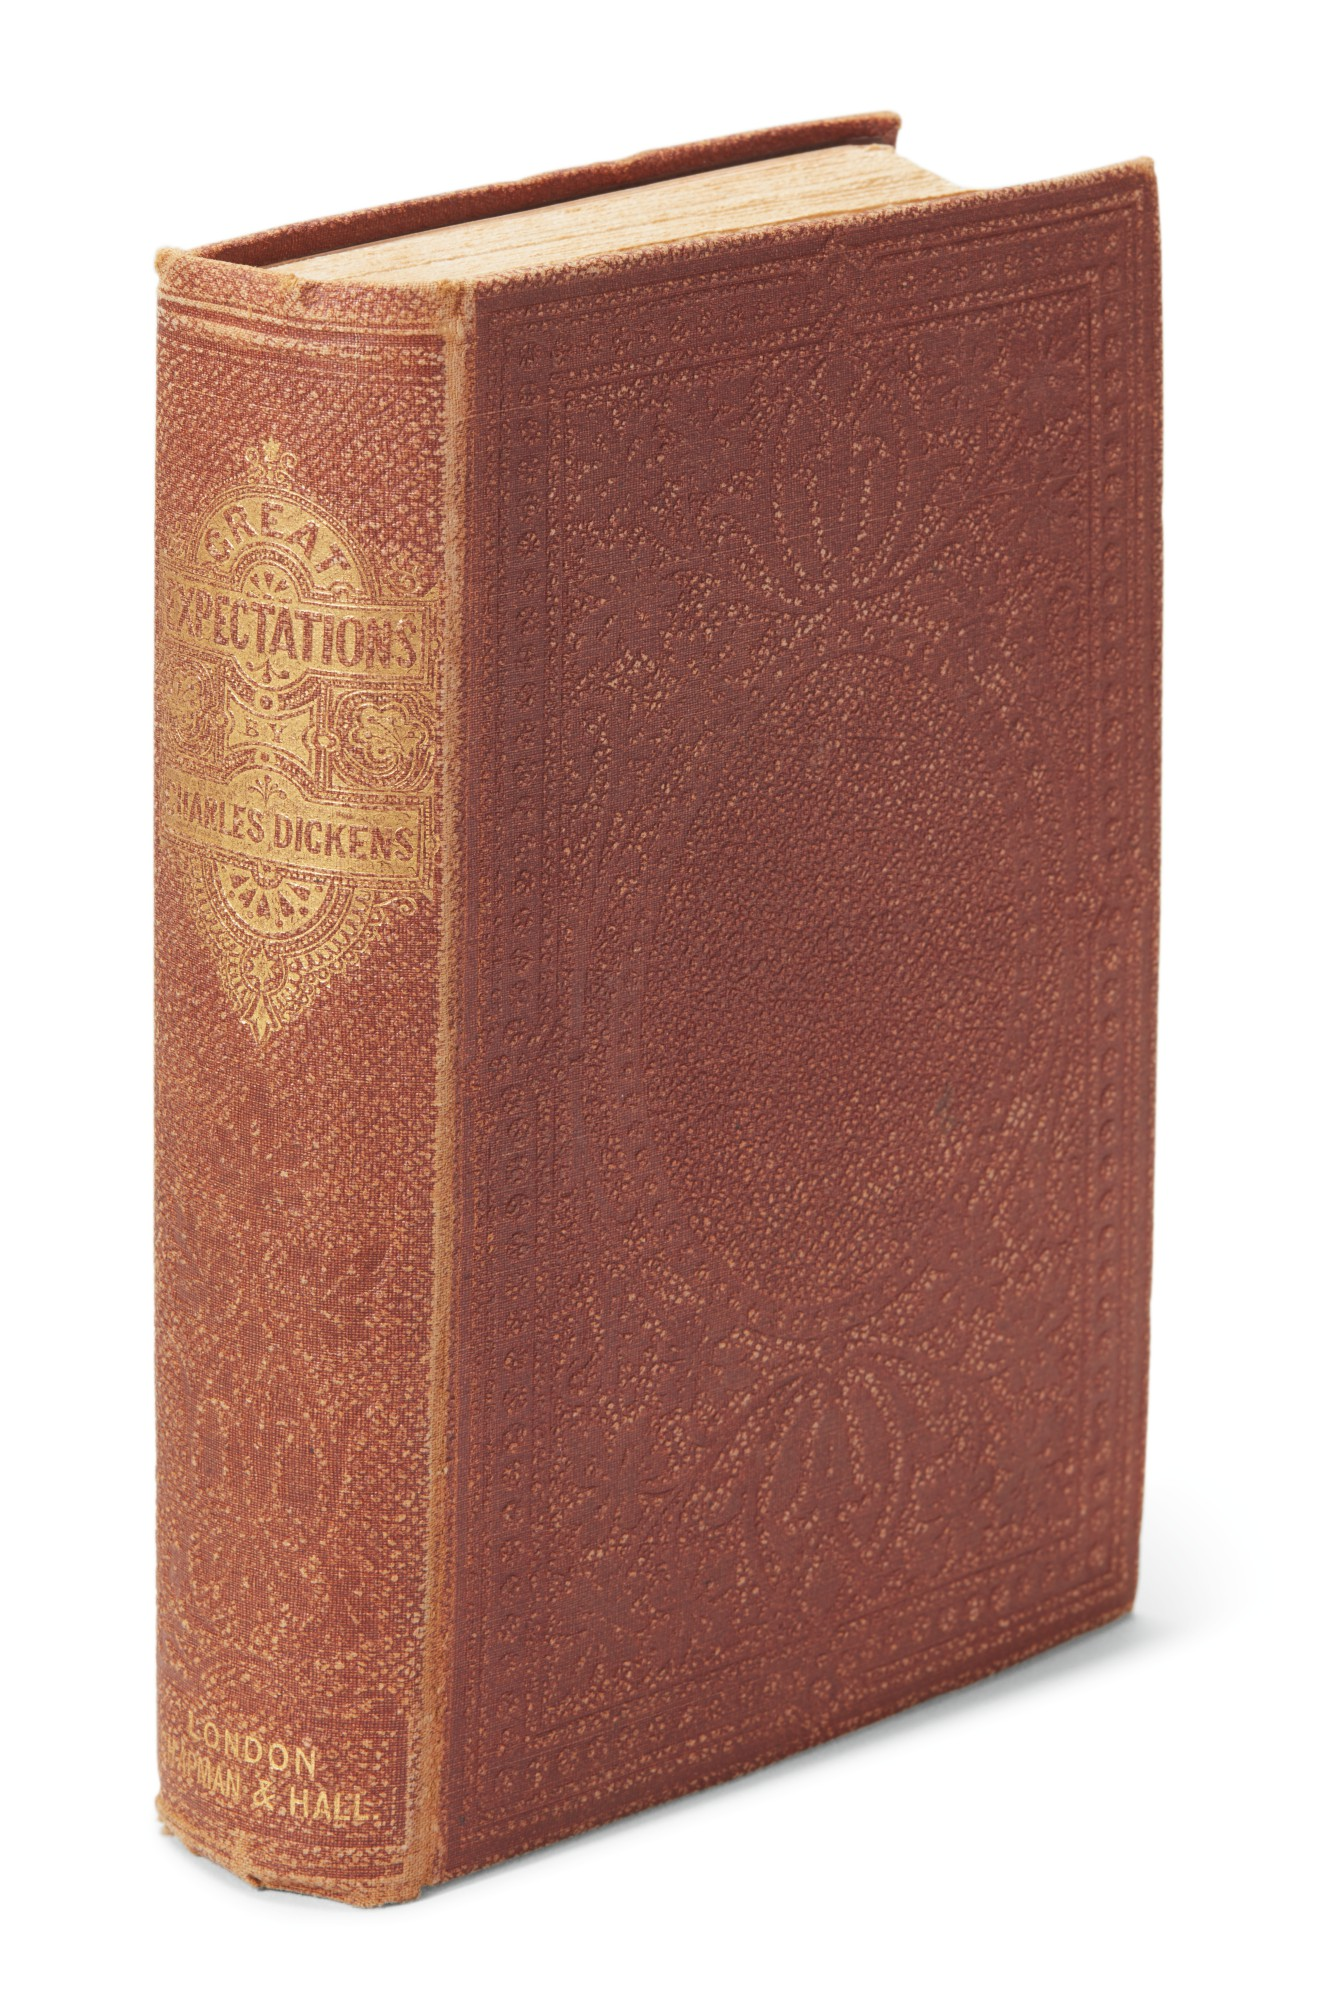 Dickens, Great Expectations, 1862, second edition, first one volume edition